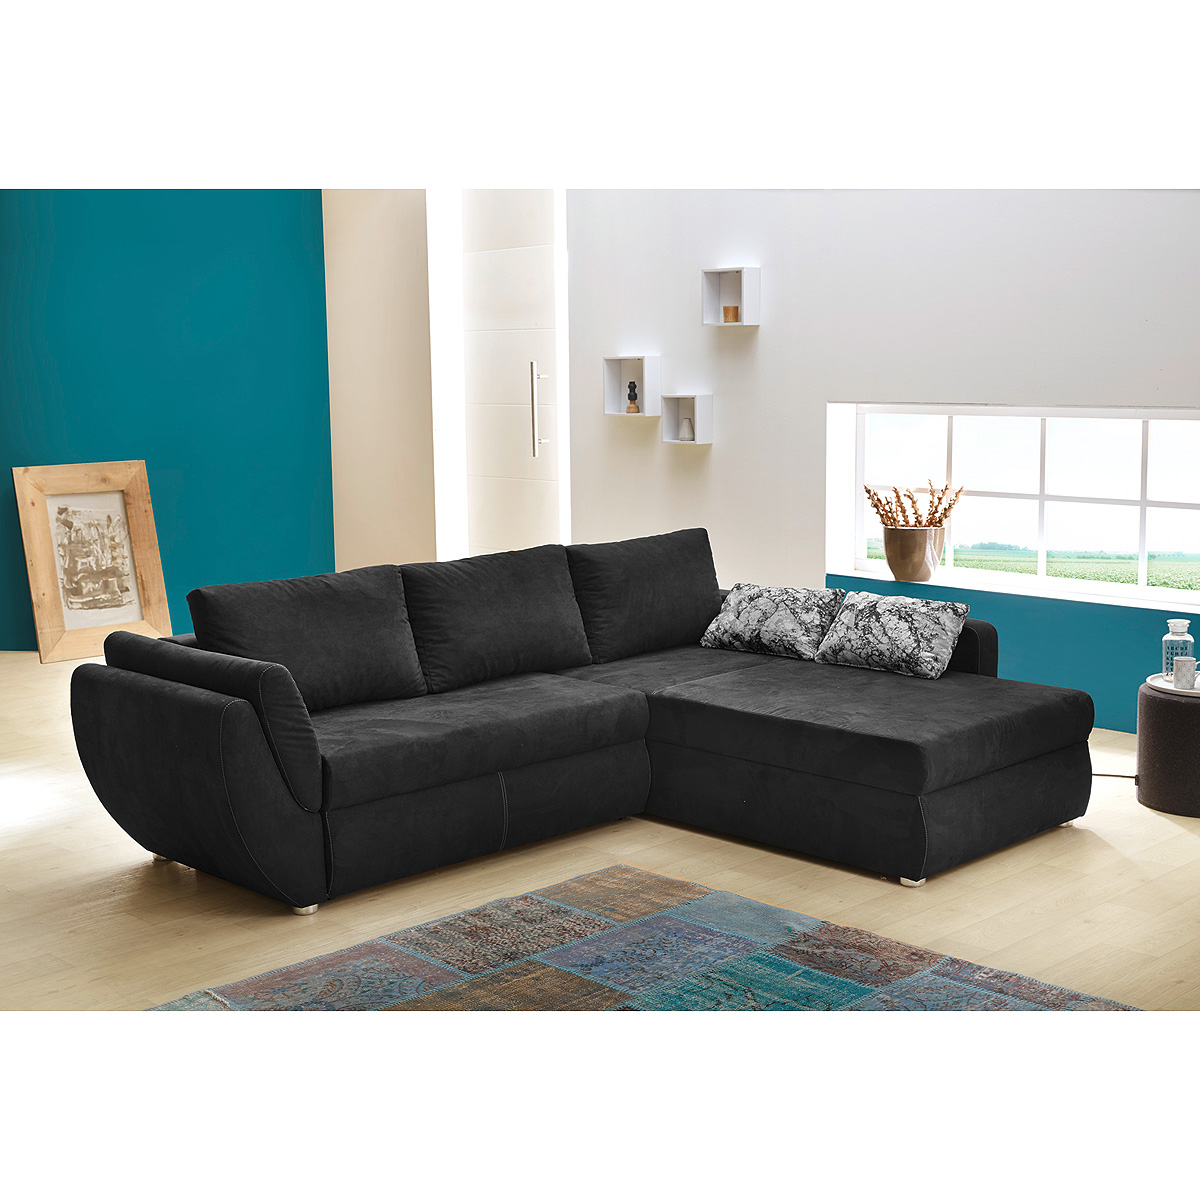 wohnlandschaft taifun sofa ecksofa in schwarz mit. Black Bedroom Furniture Sets. Home Design Ideas